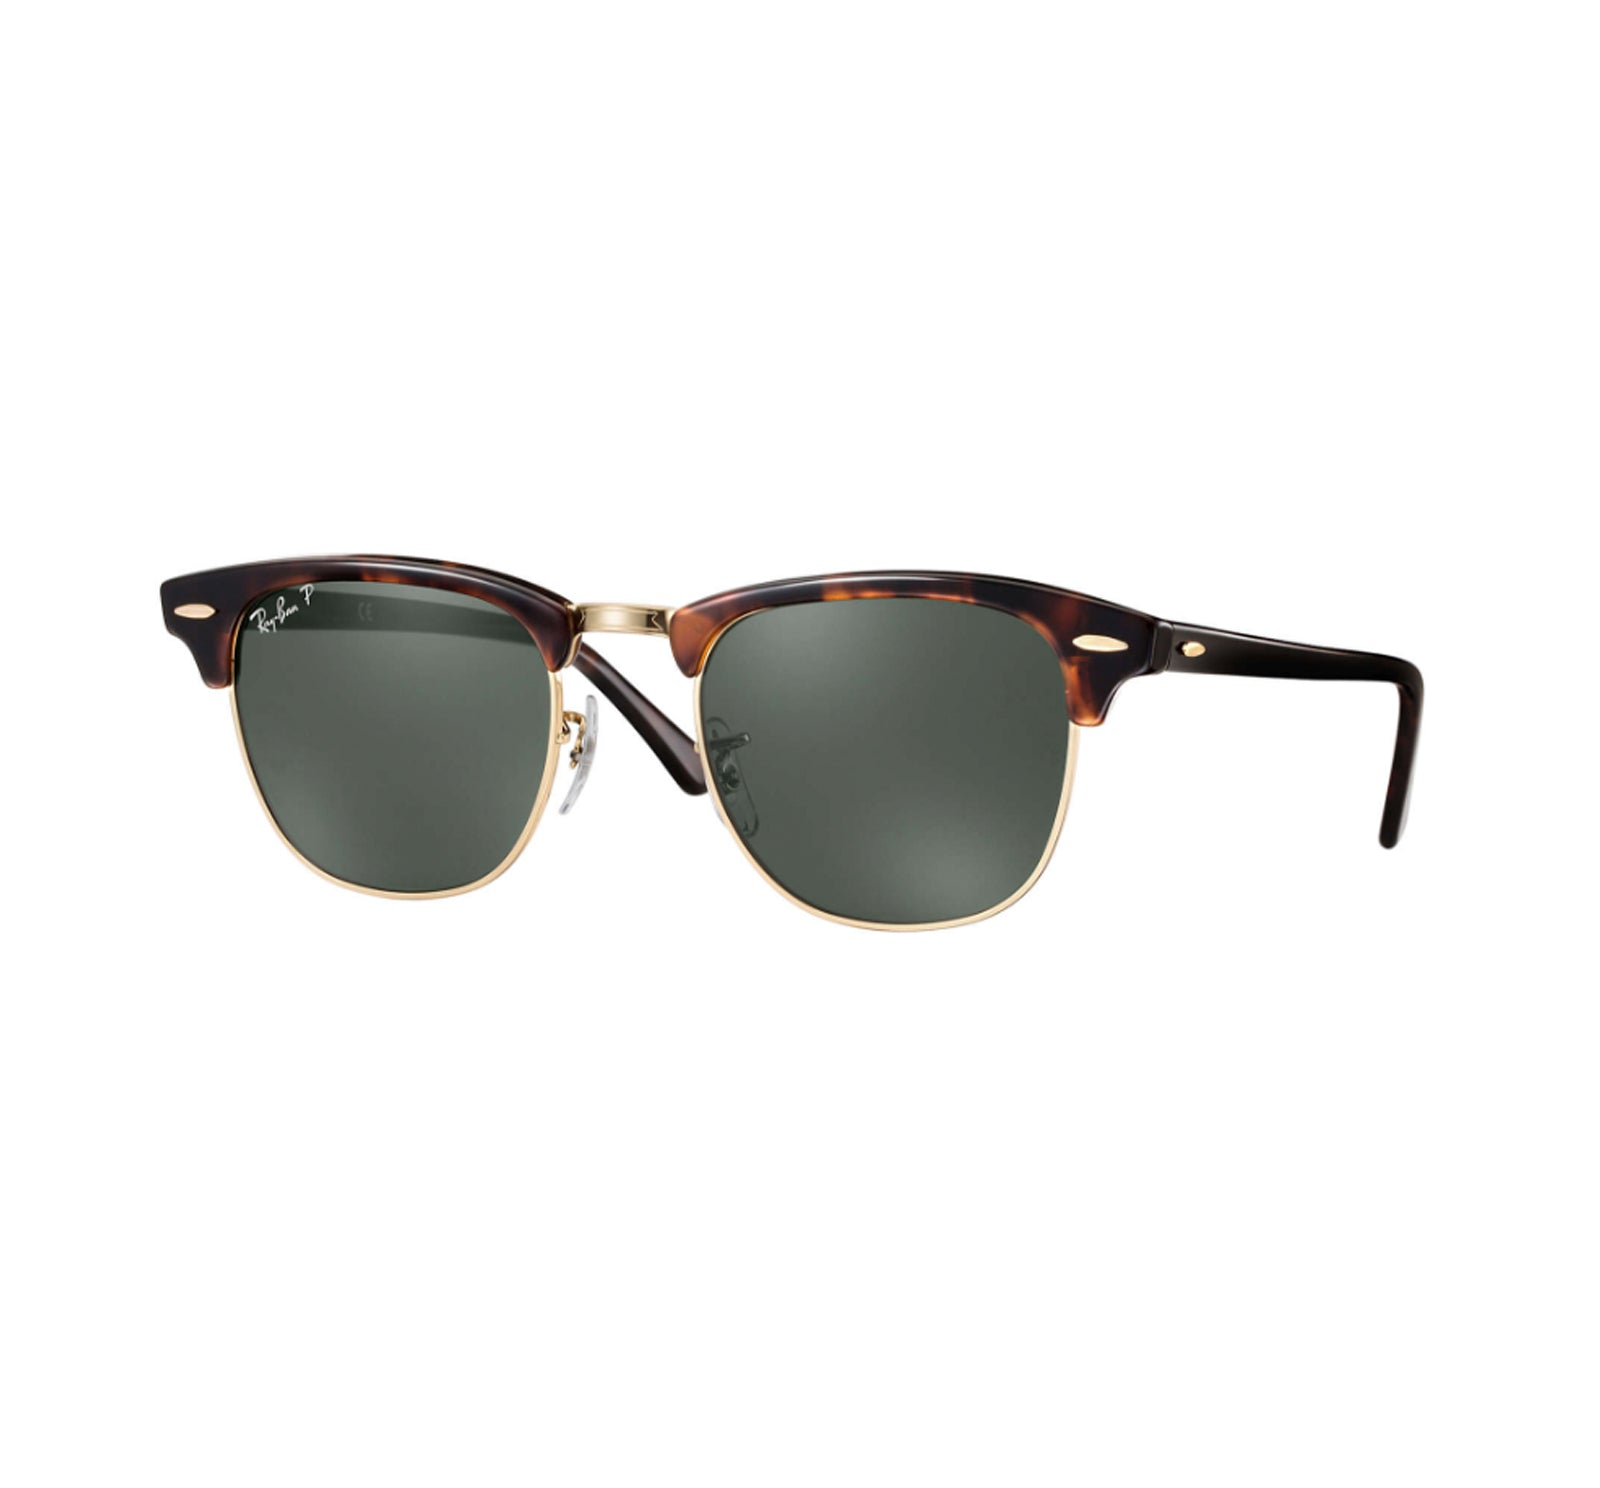 c682be8eb6e Ray-Ban Clubmaster Men s Sunglasses - Red Havana Frame Green Polarized -  Surf Station Store